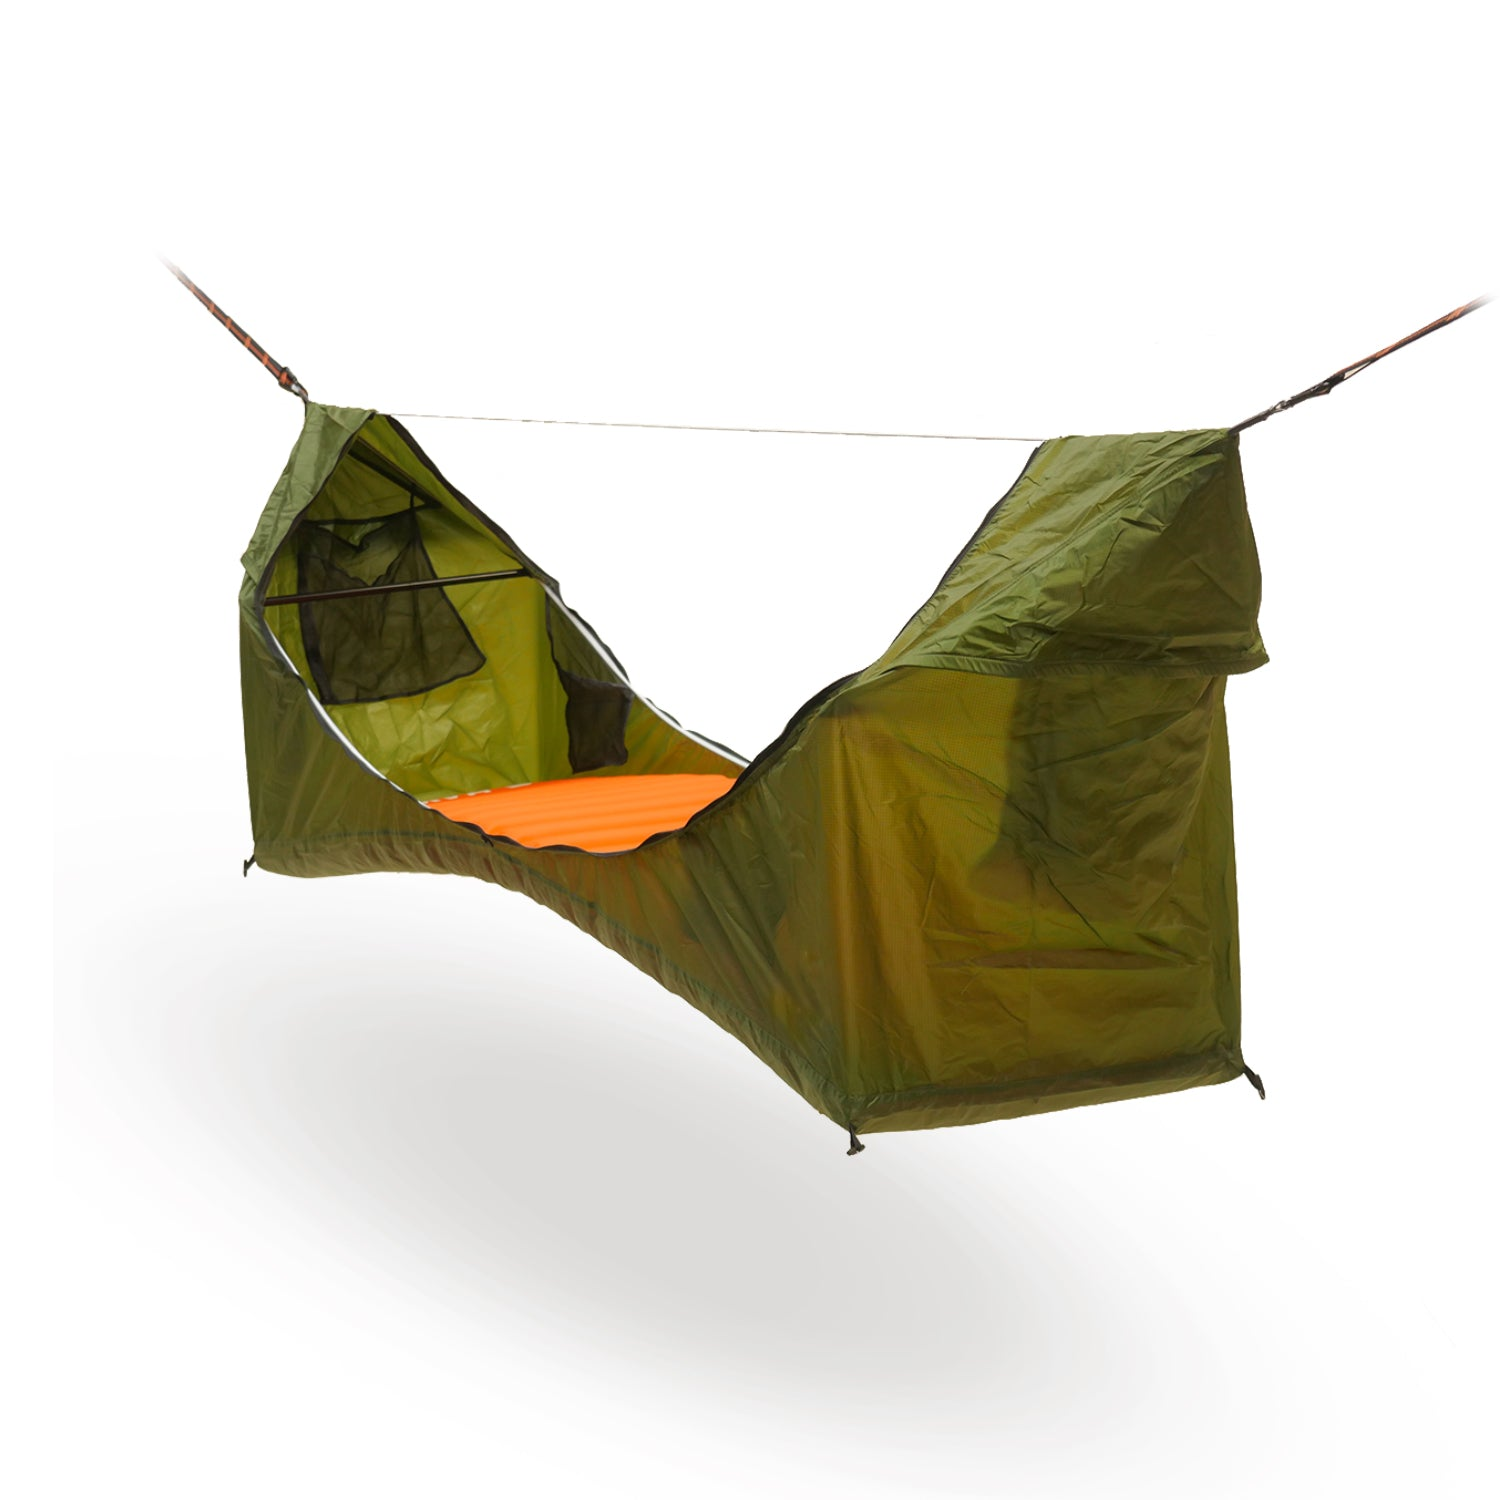 Outdoor multifunctional hammock tent